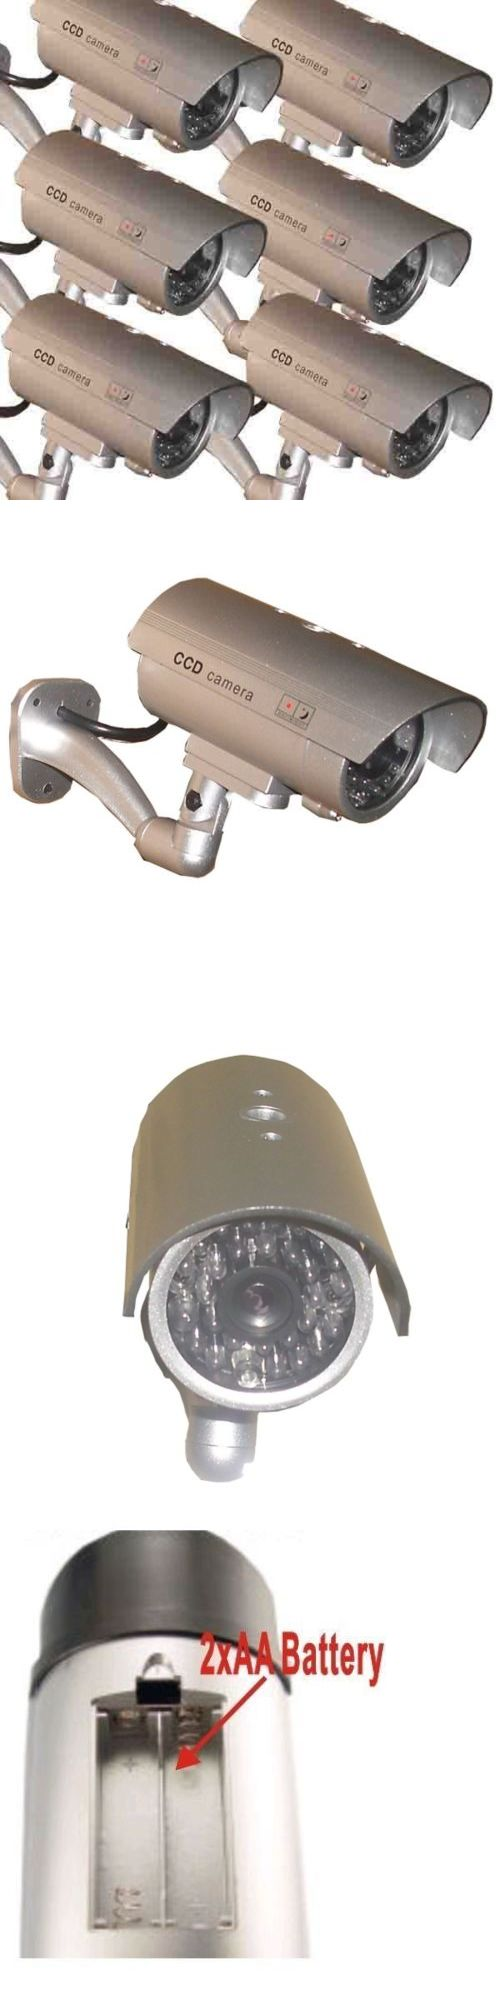 Dummy Cameras: 6X Dummy Security Camera Fake Waterproof Led Light Home Surveillance Outdoor -> BUY IT NOW ONLY: $49.9 on eBay!